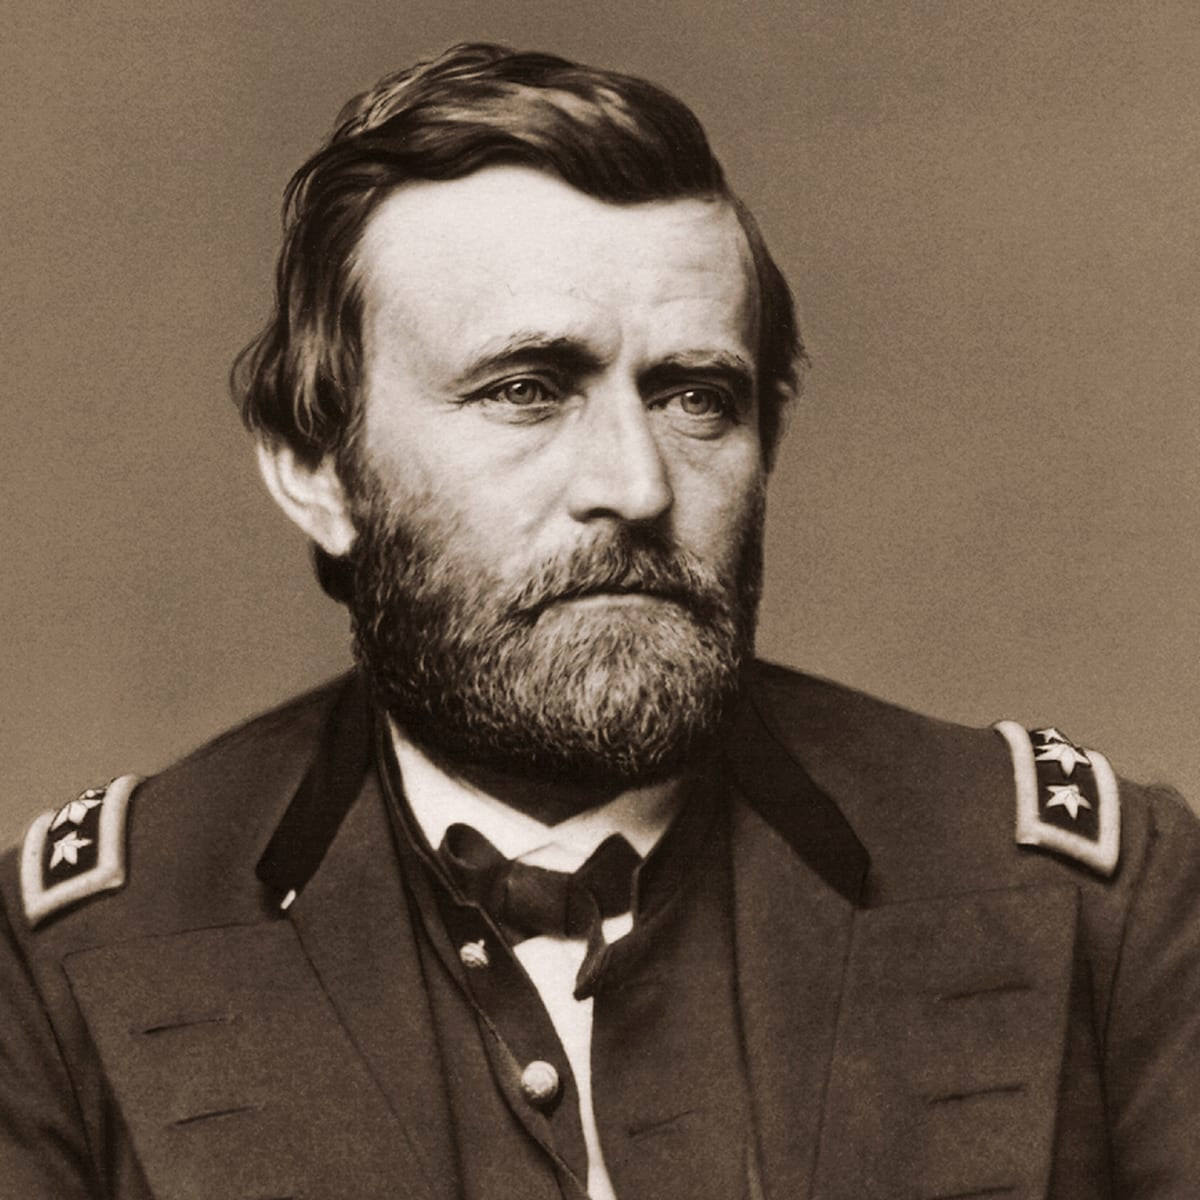 american-military-commander-and-future-us-president-ulysses-s-grant-1822---1885-mid-19th-century-photo-by-stock-montagegetty-images